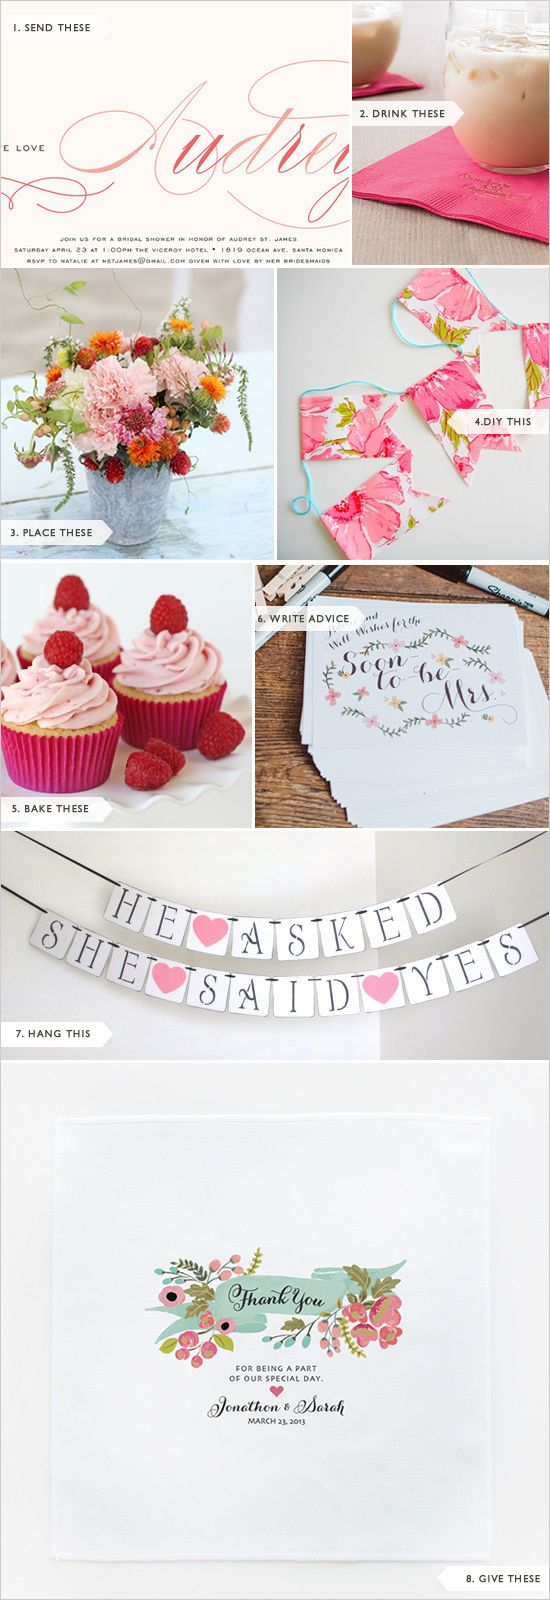 wedding shower poem ideas%0A Easy Bridal Shower Ideas